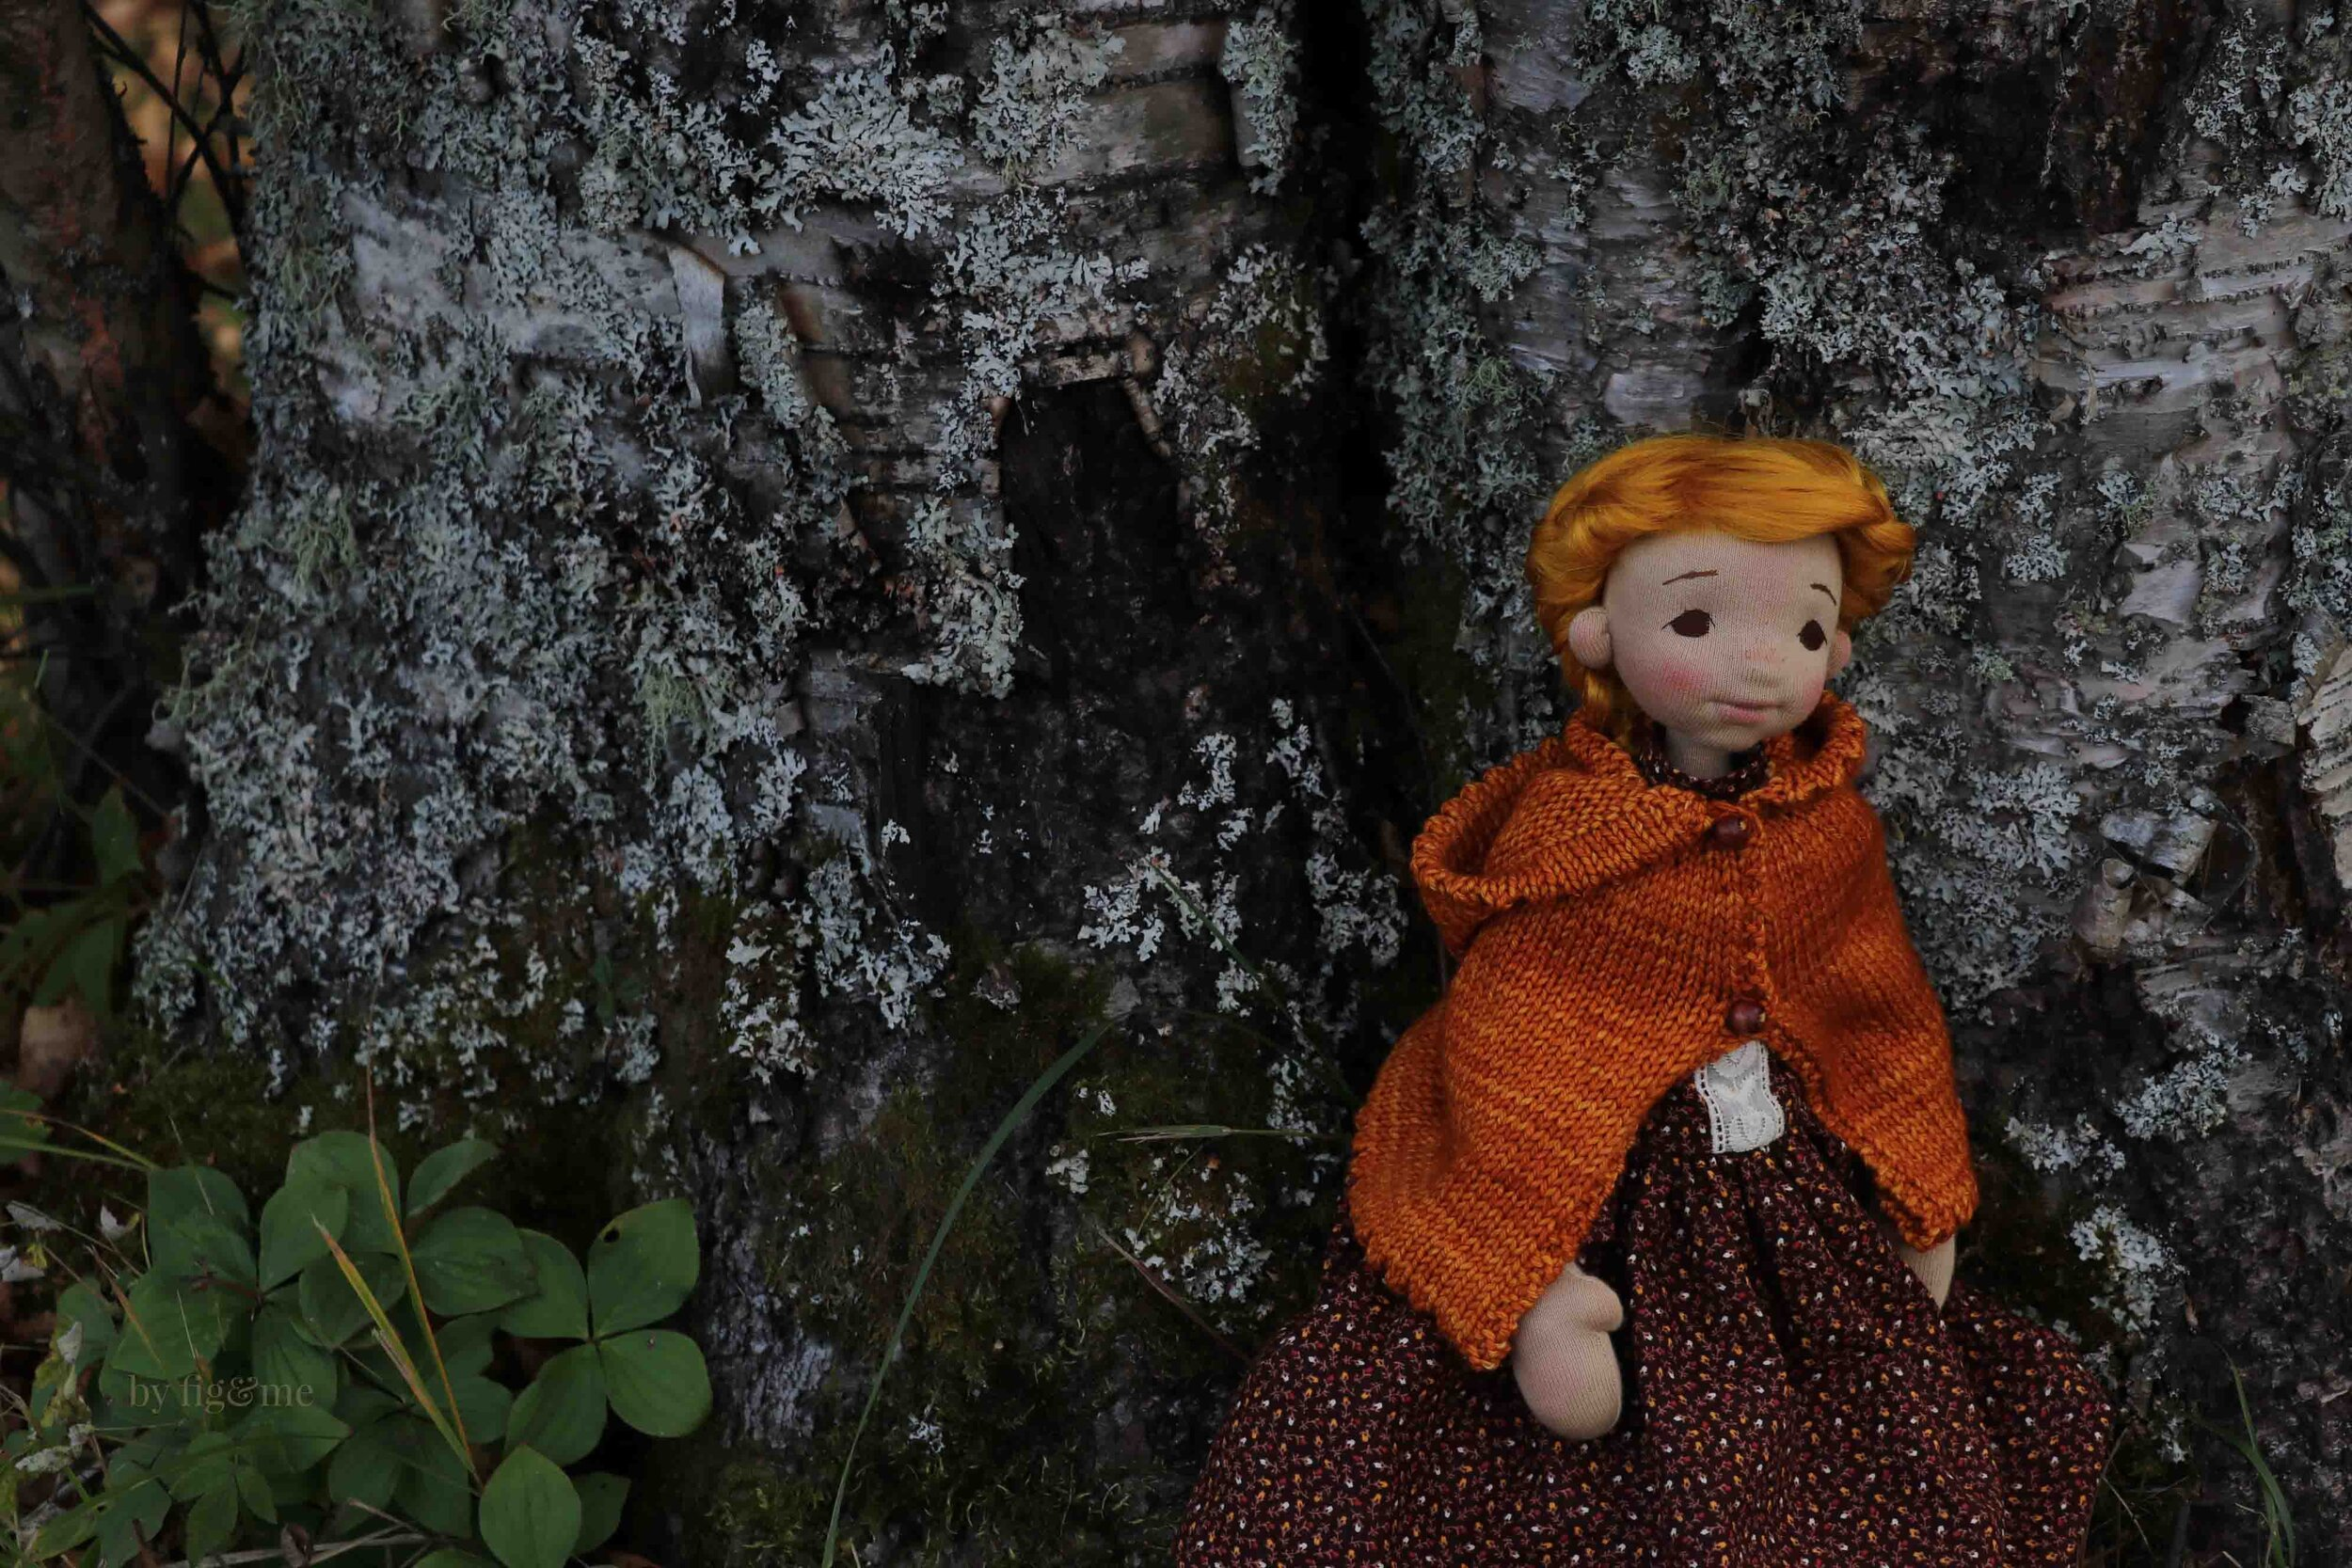 Winona, a natural fiber art doll by fig and me.